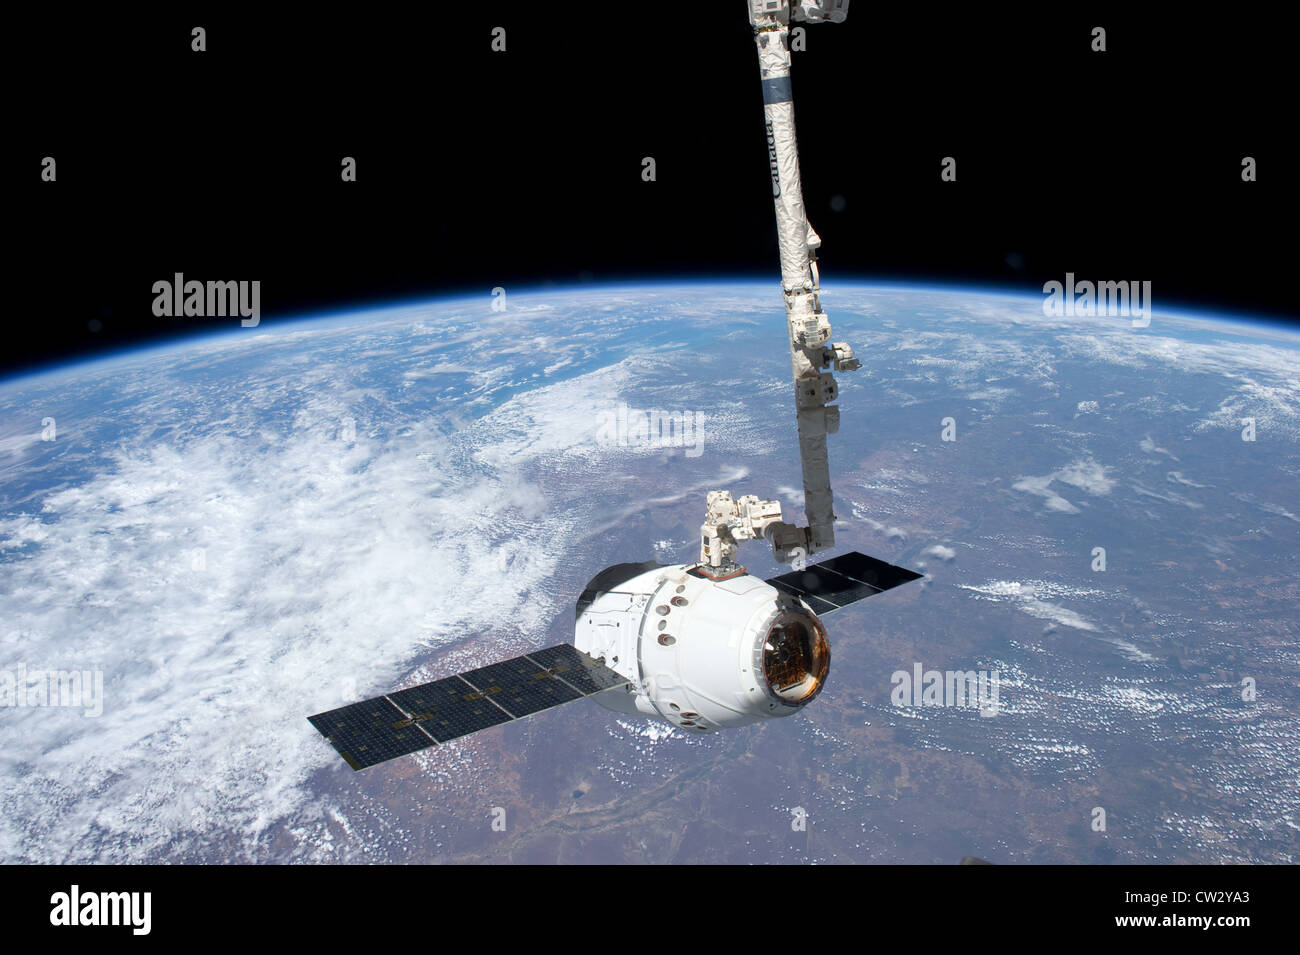 SpaceX Dragon commercial cargo craft grappled by the Canadarm2 robotic arm at the International Space Station Earth - Stock Image